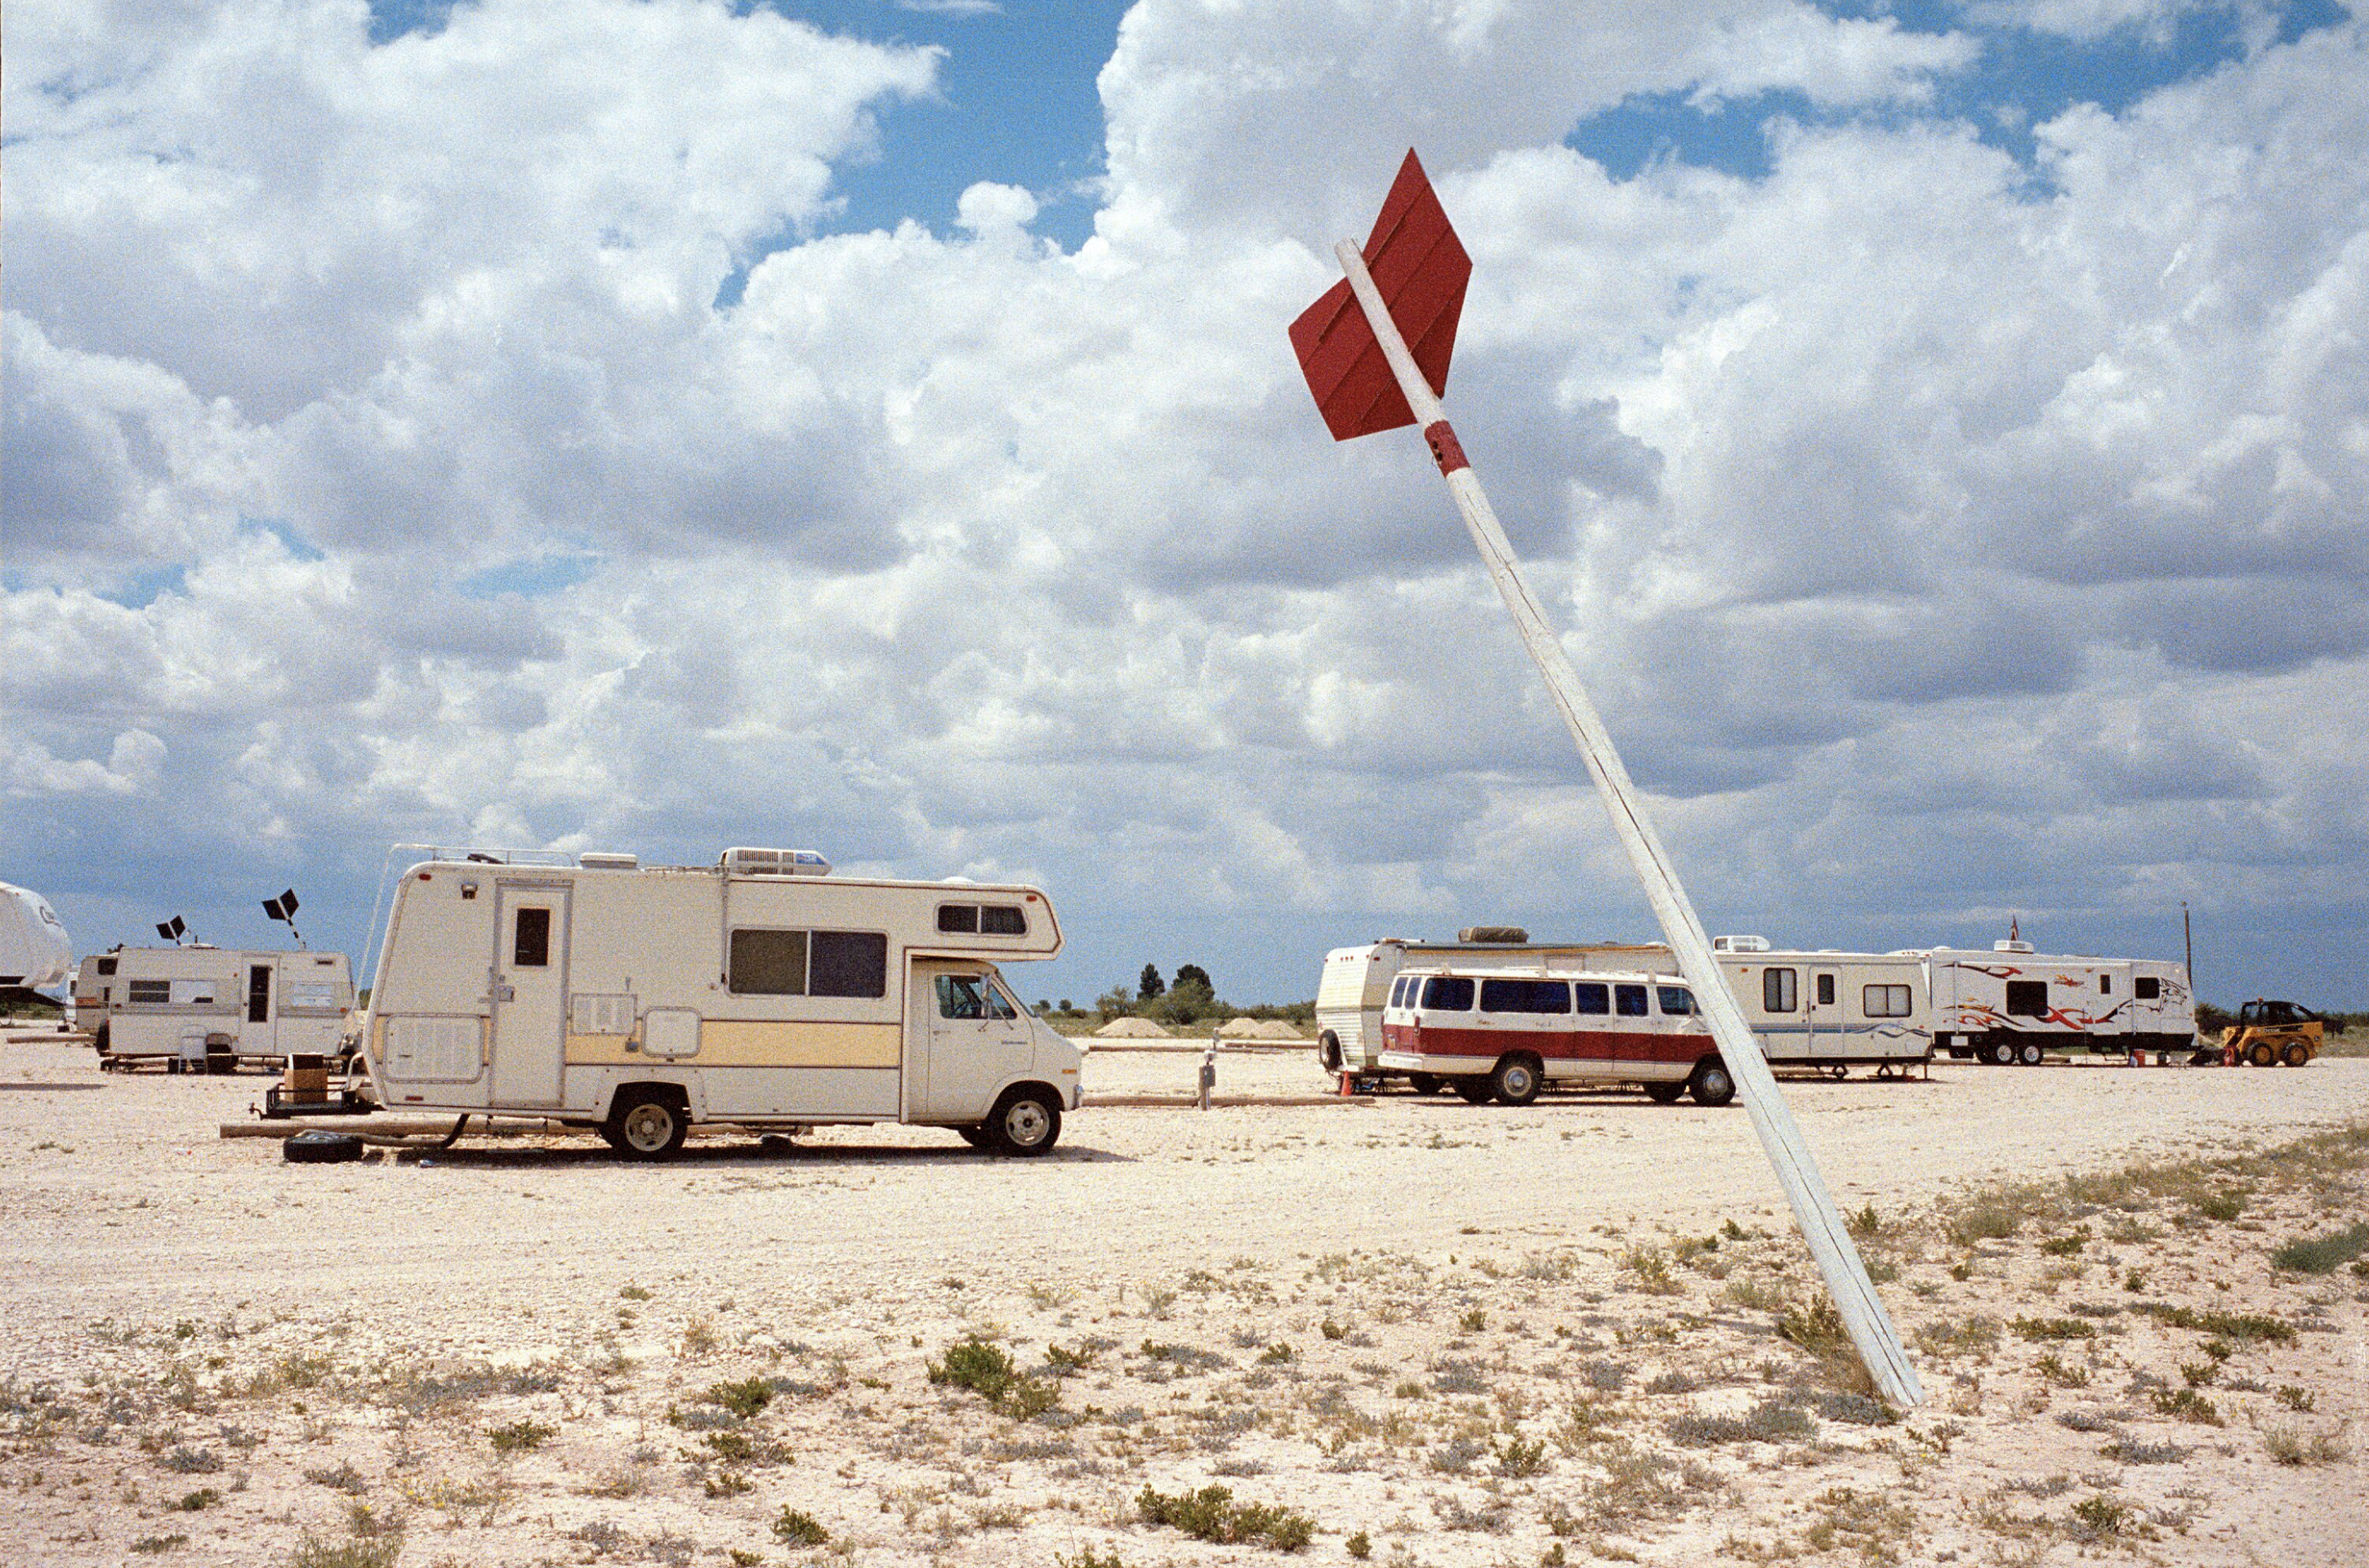 Comanche Land RV Park, Fort Stockton, Texas, 2007